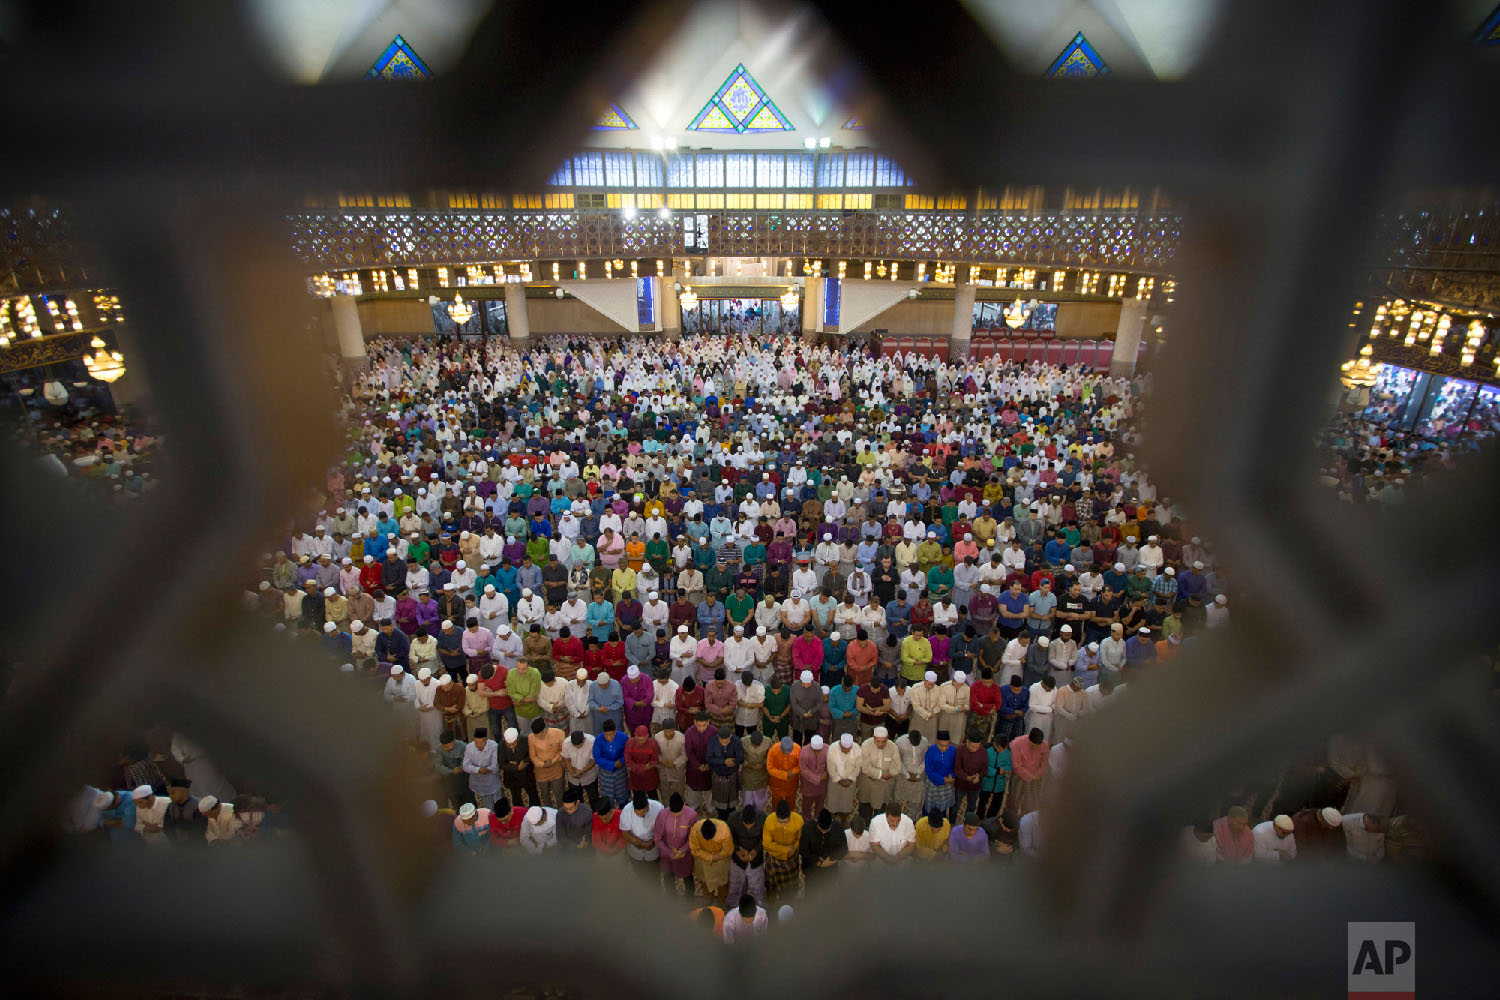 Malaysian Muslims offer prayers during the first day of Eid al-Fitr, which marks the end of the holy fasting month of Ramadan in Kuala Lumpur, Malaysia, on June 15, 2018. (AP Photo/Vincent Thian)